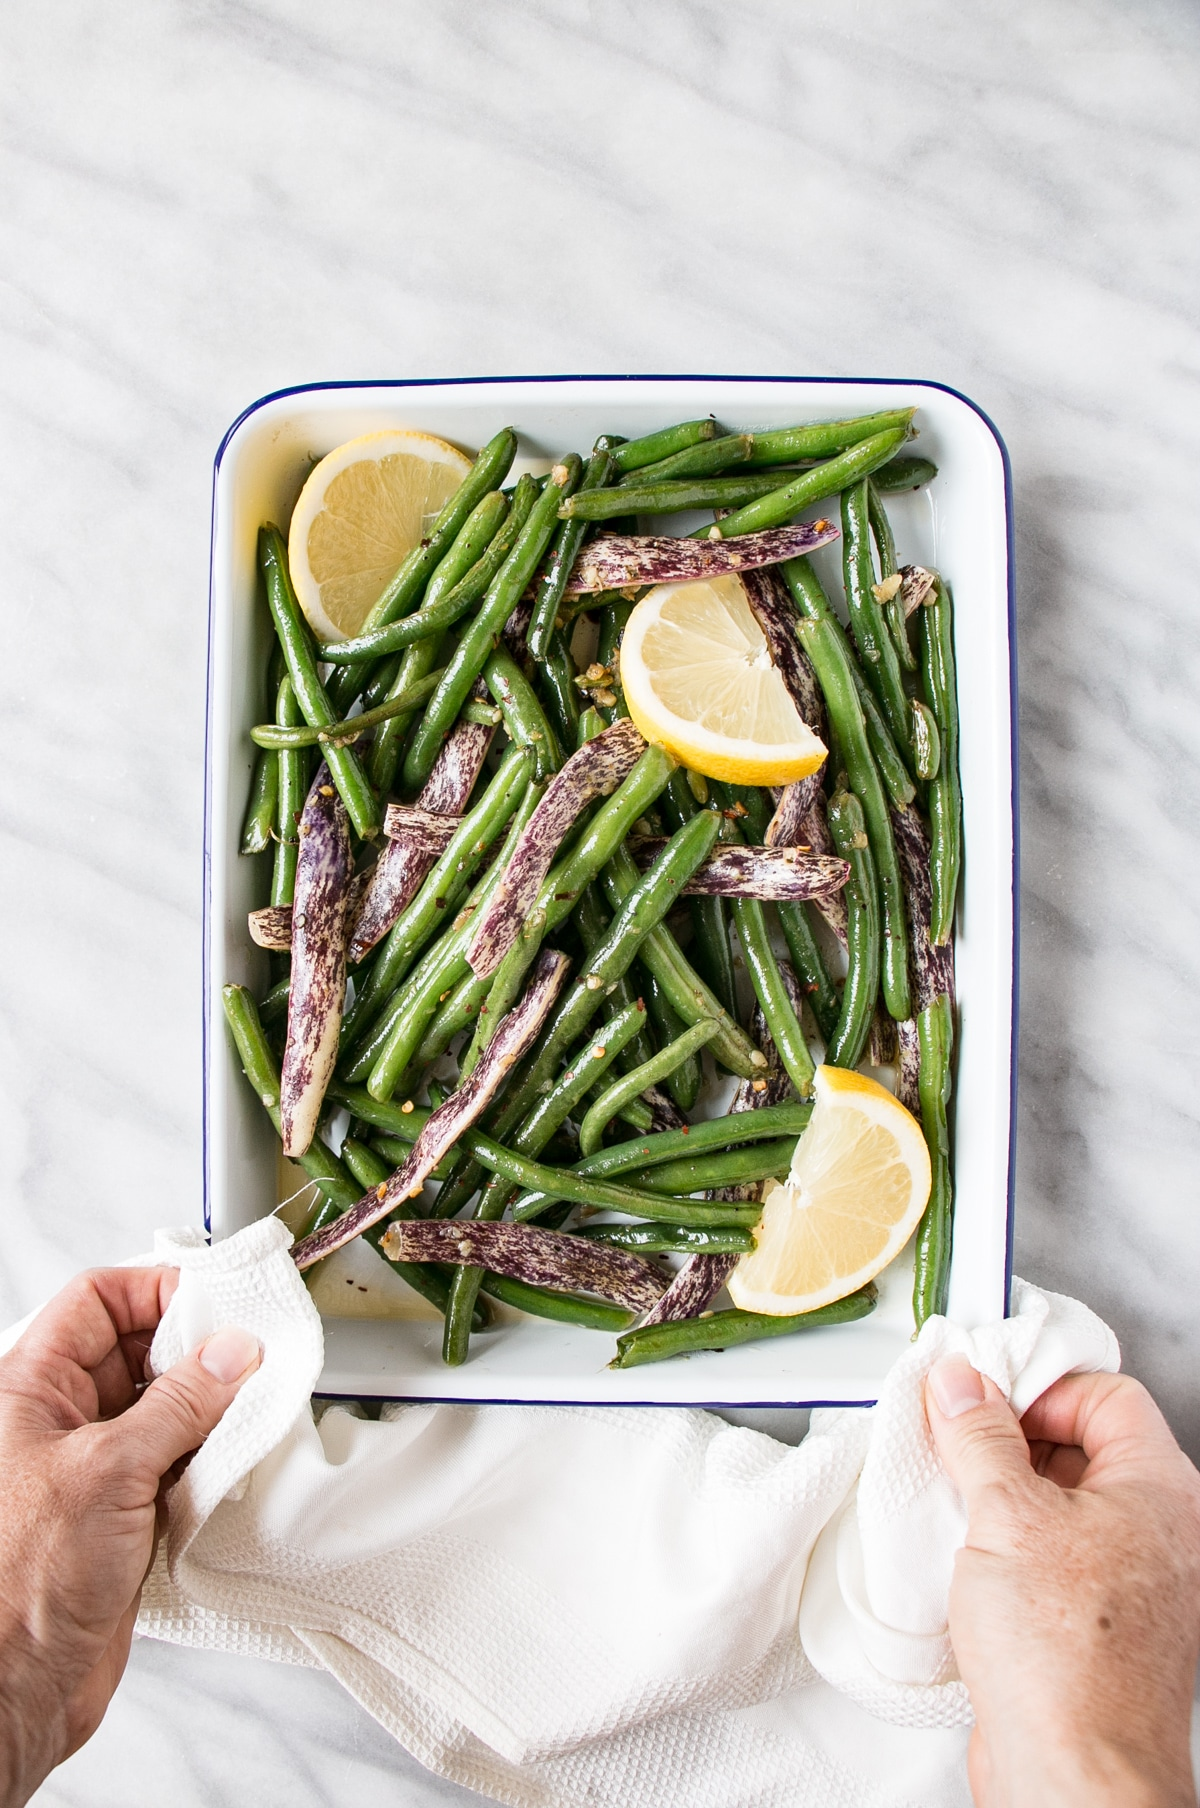 Garlicky Green Beans in a white serving tray being served with someone holding a white dish cloth.